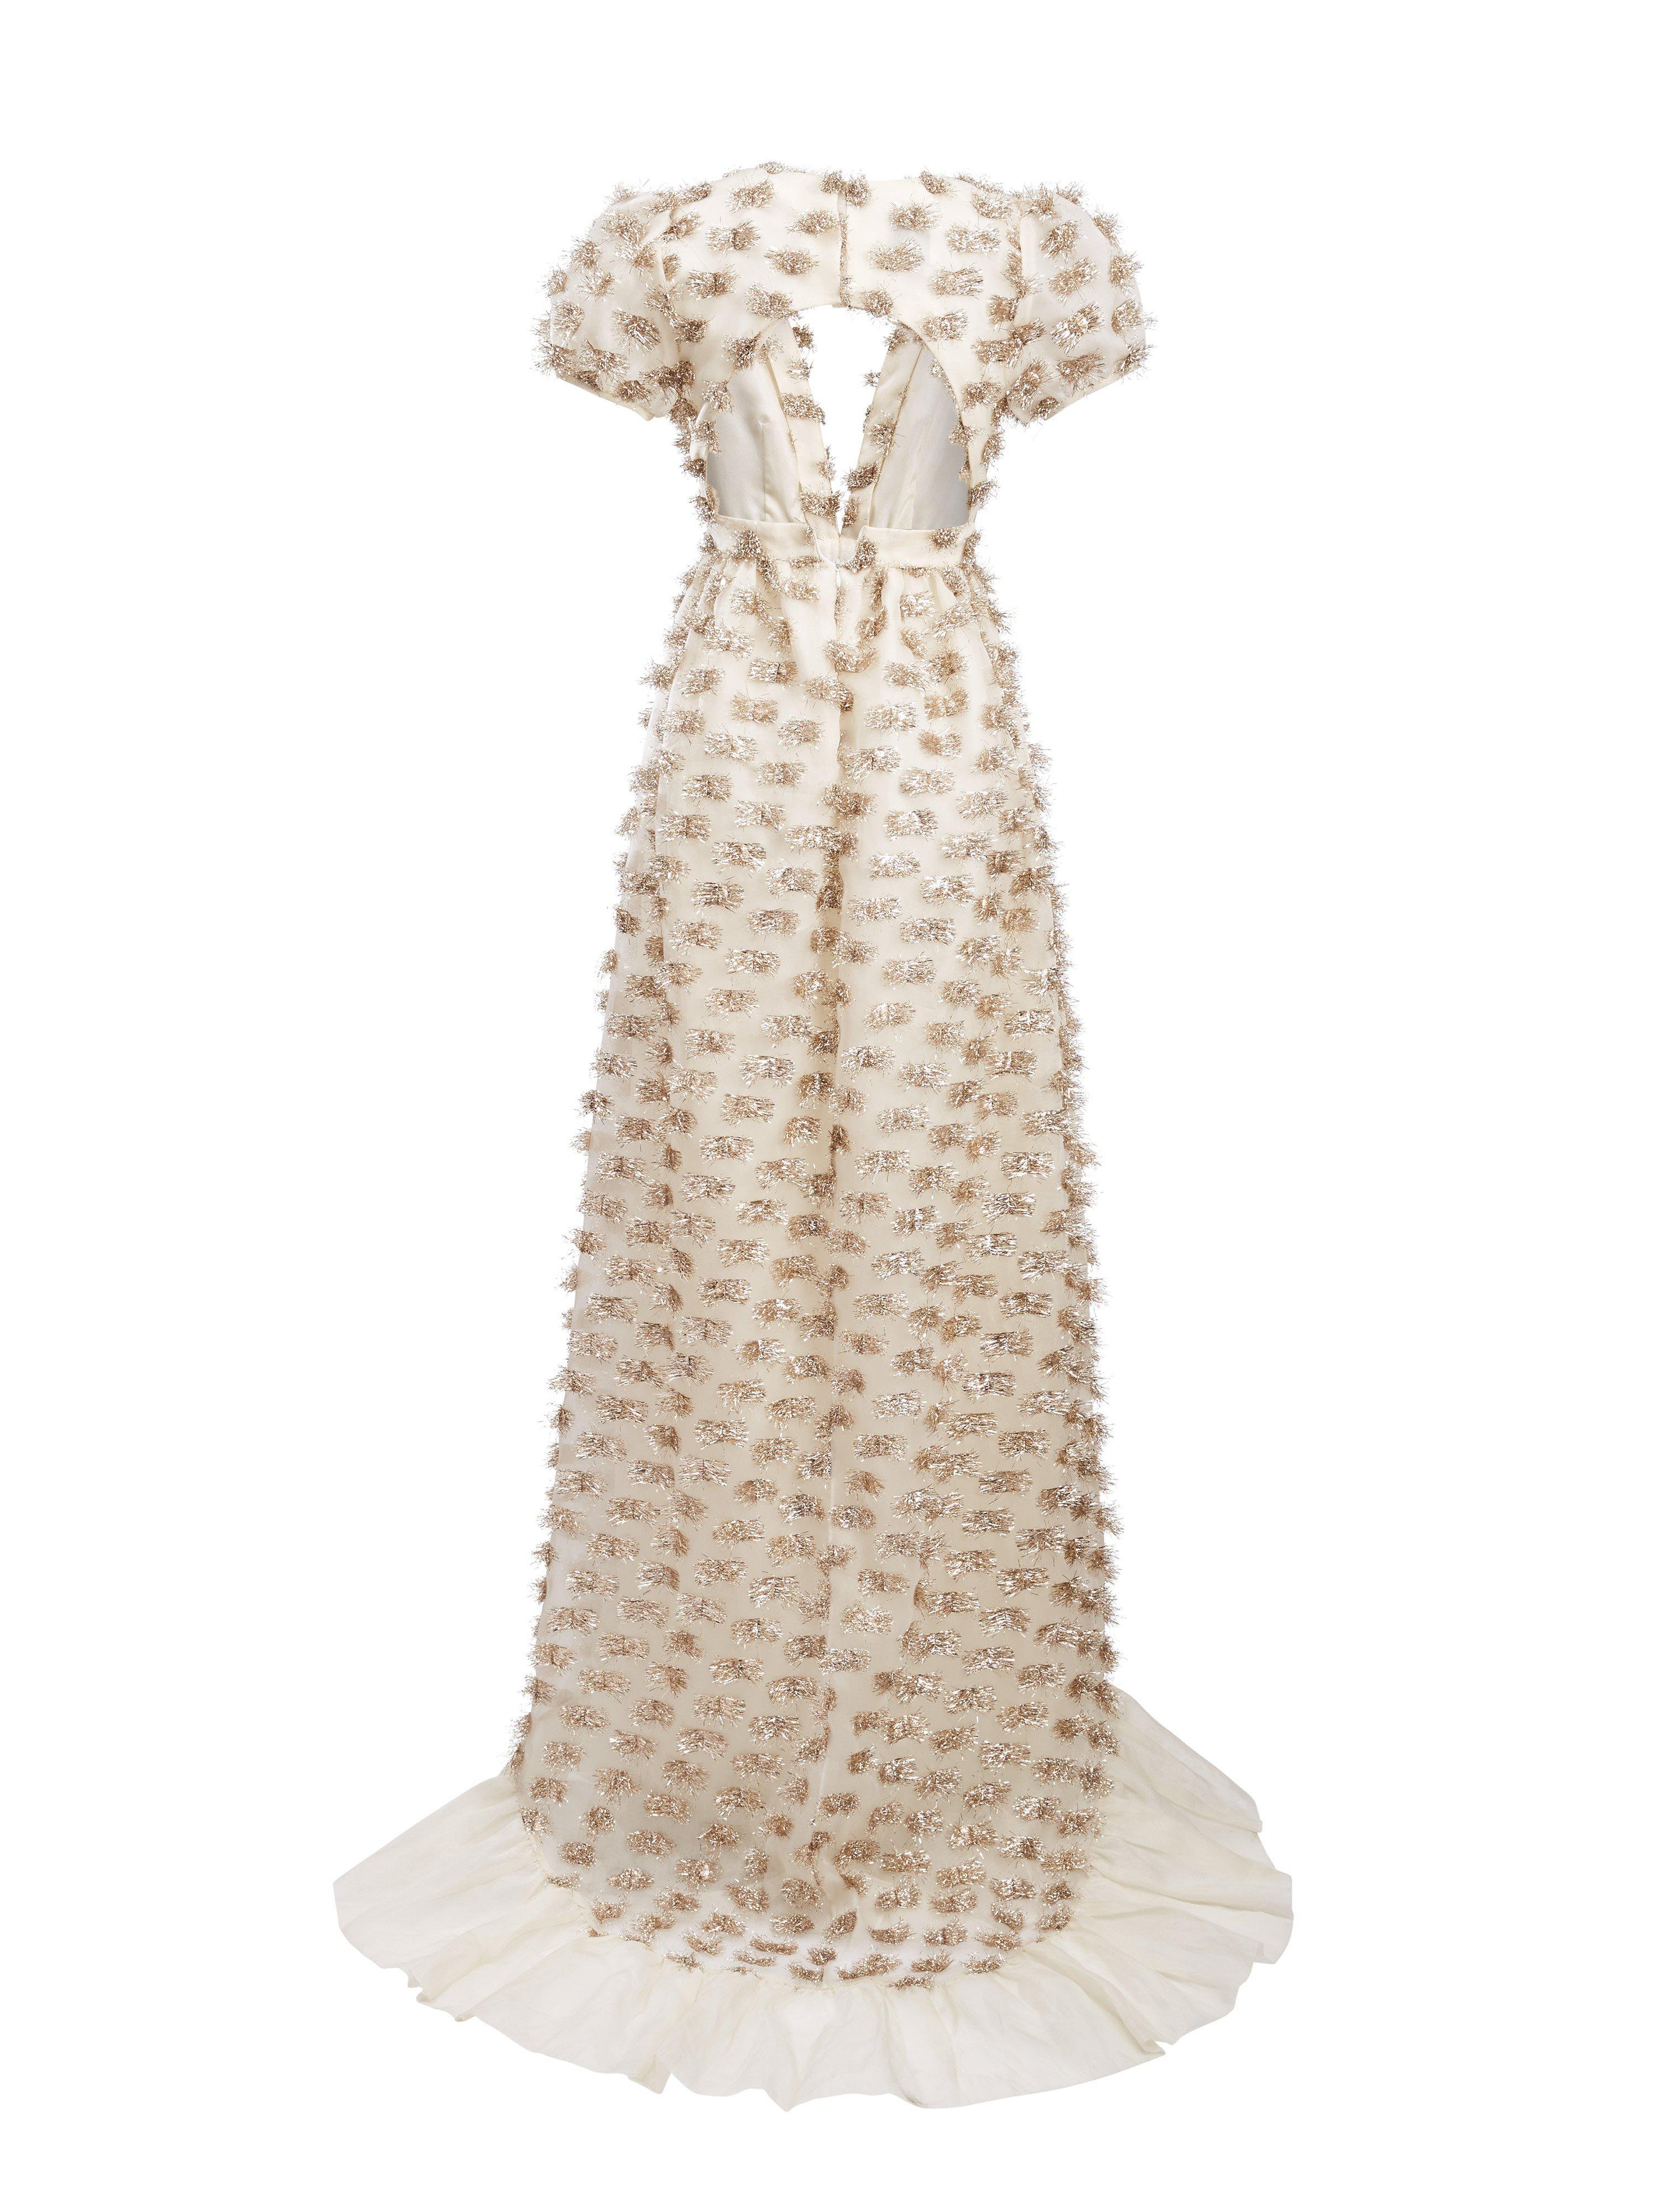 Forget Me Not White and Gold Gown 2